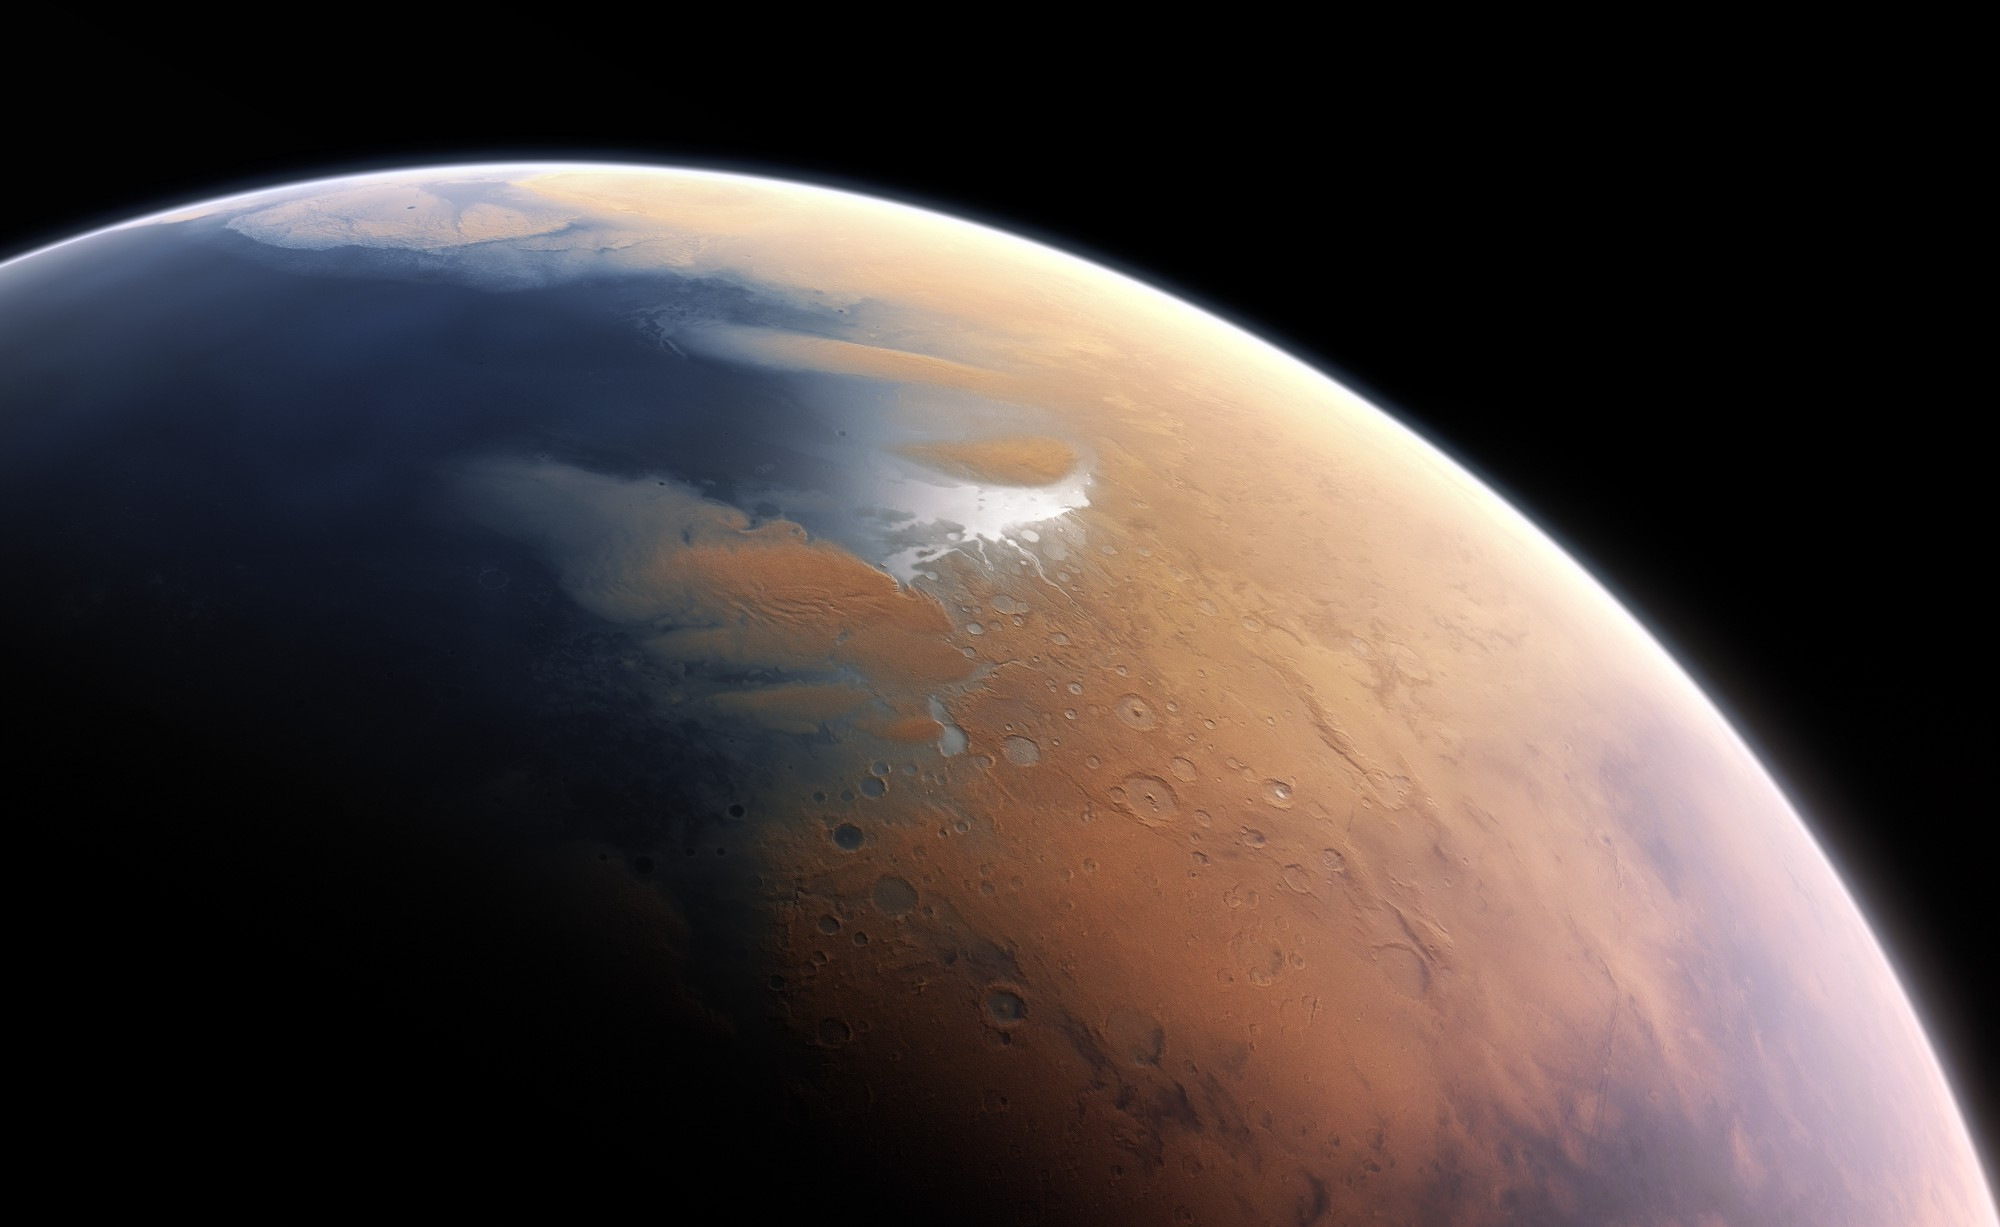 Mars through the eyes of TGO 61